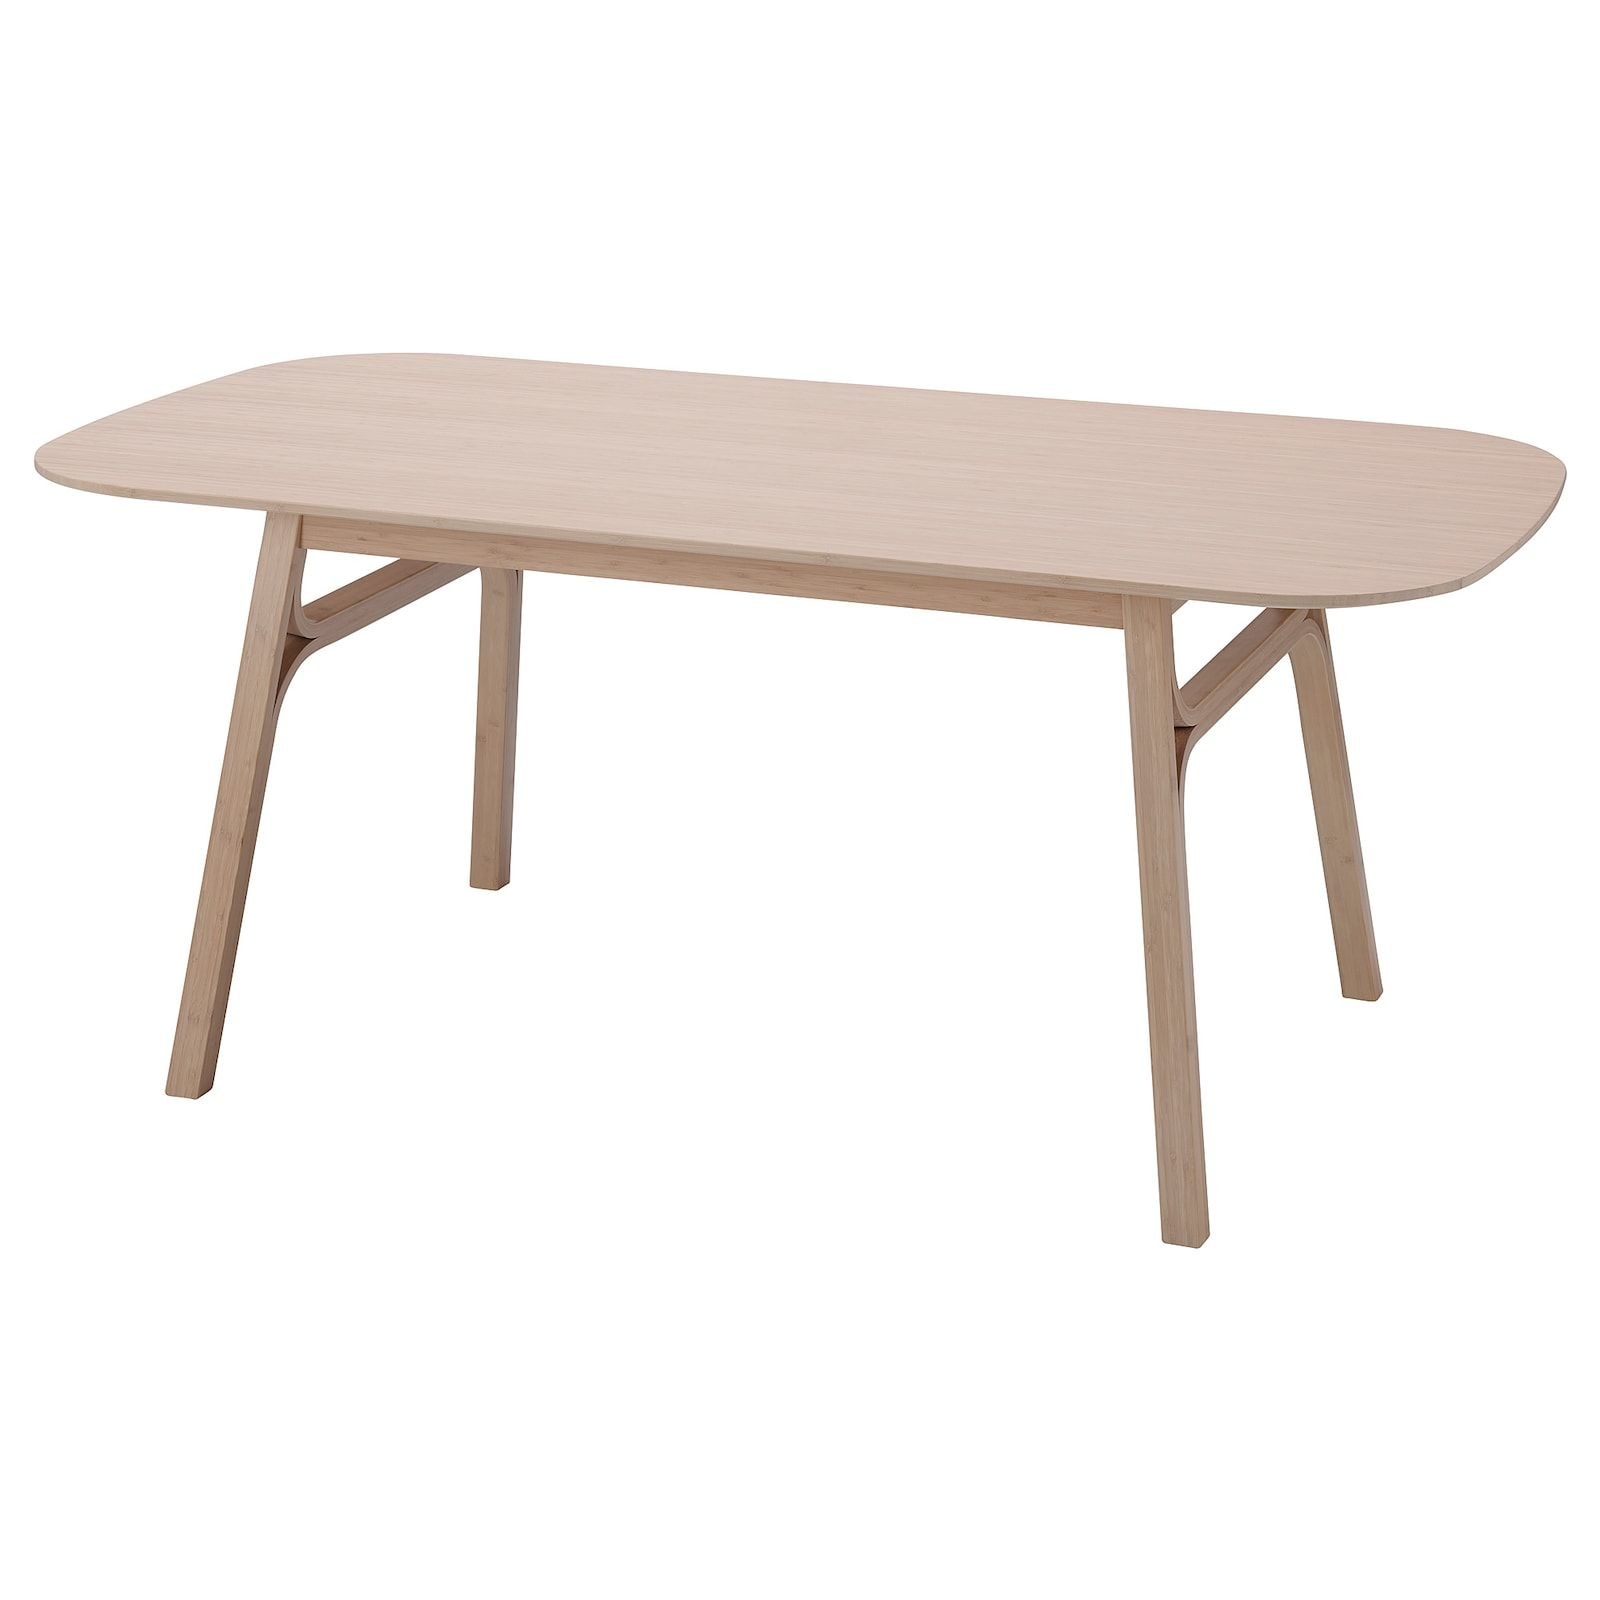 Voxlov Dining Table Light Bamboo Ikea In 2020 Dining Table Lighting Light Wood Dining Table Ikea Dining Table